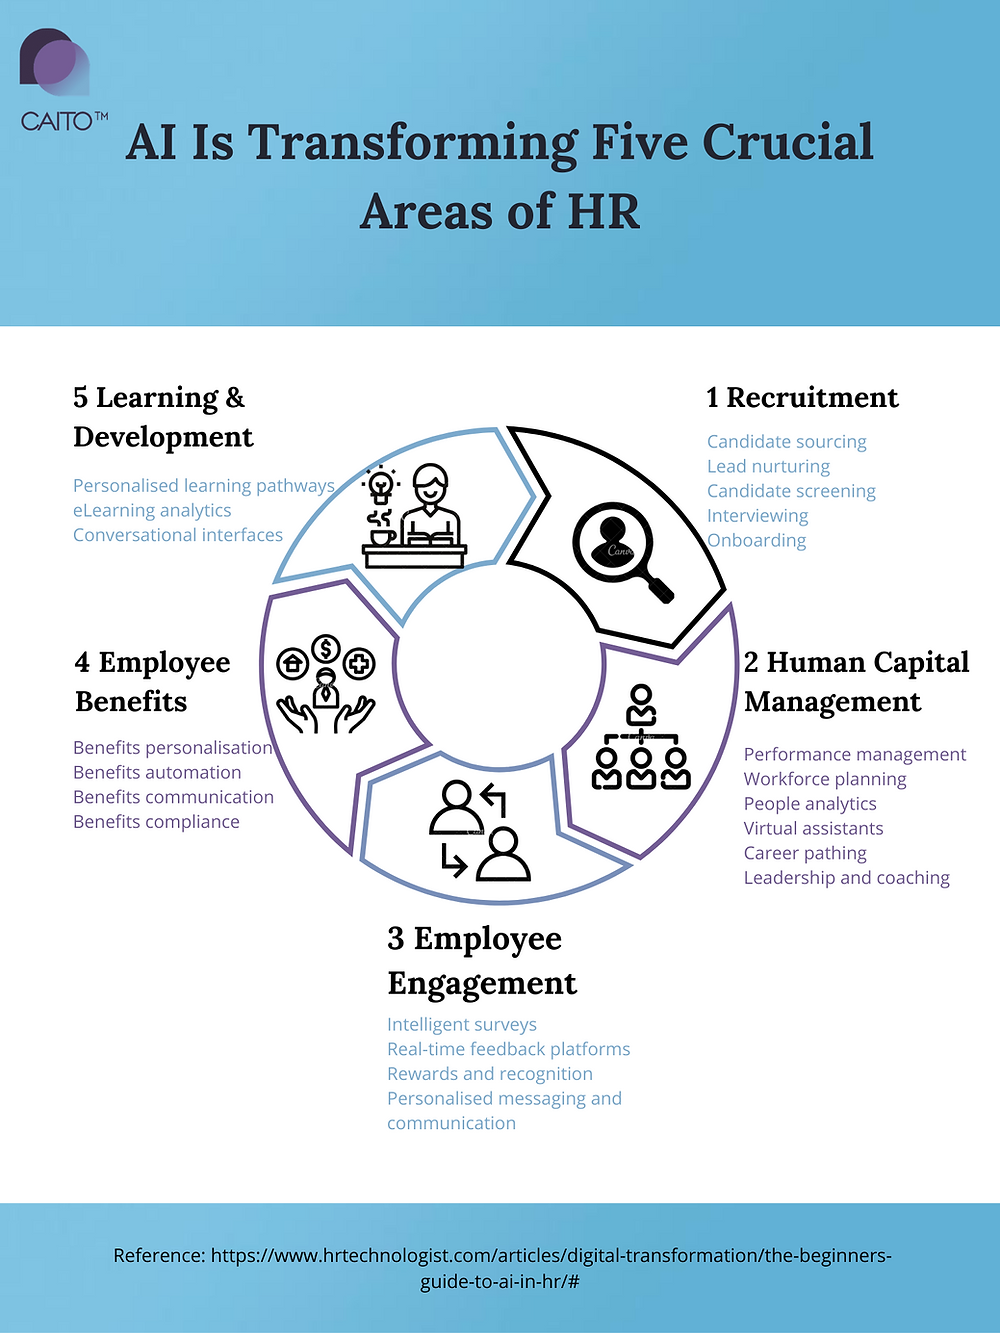 Recruitment, Human Capital Management, Employee Engagement, Employee Benefits, Learning & Development.